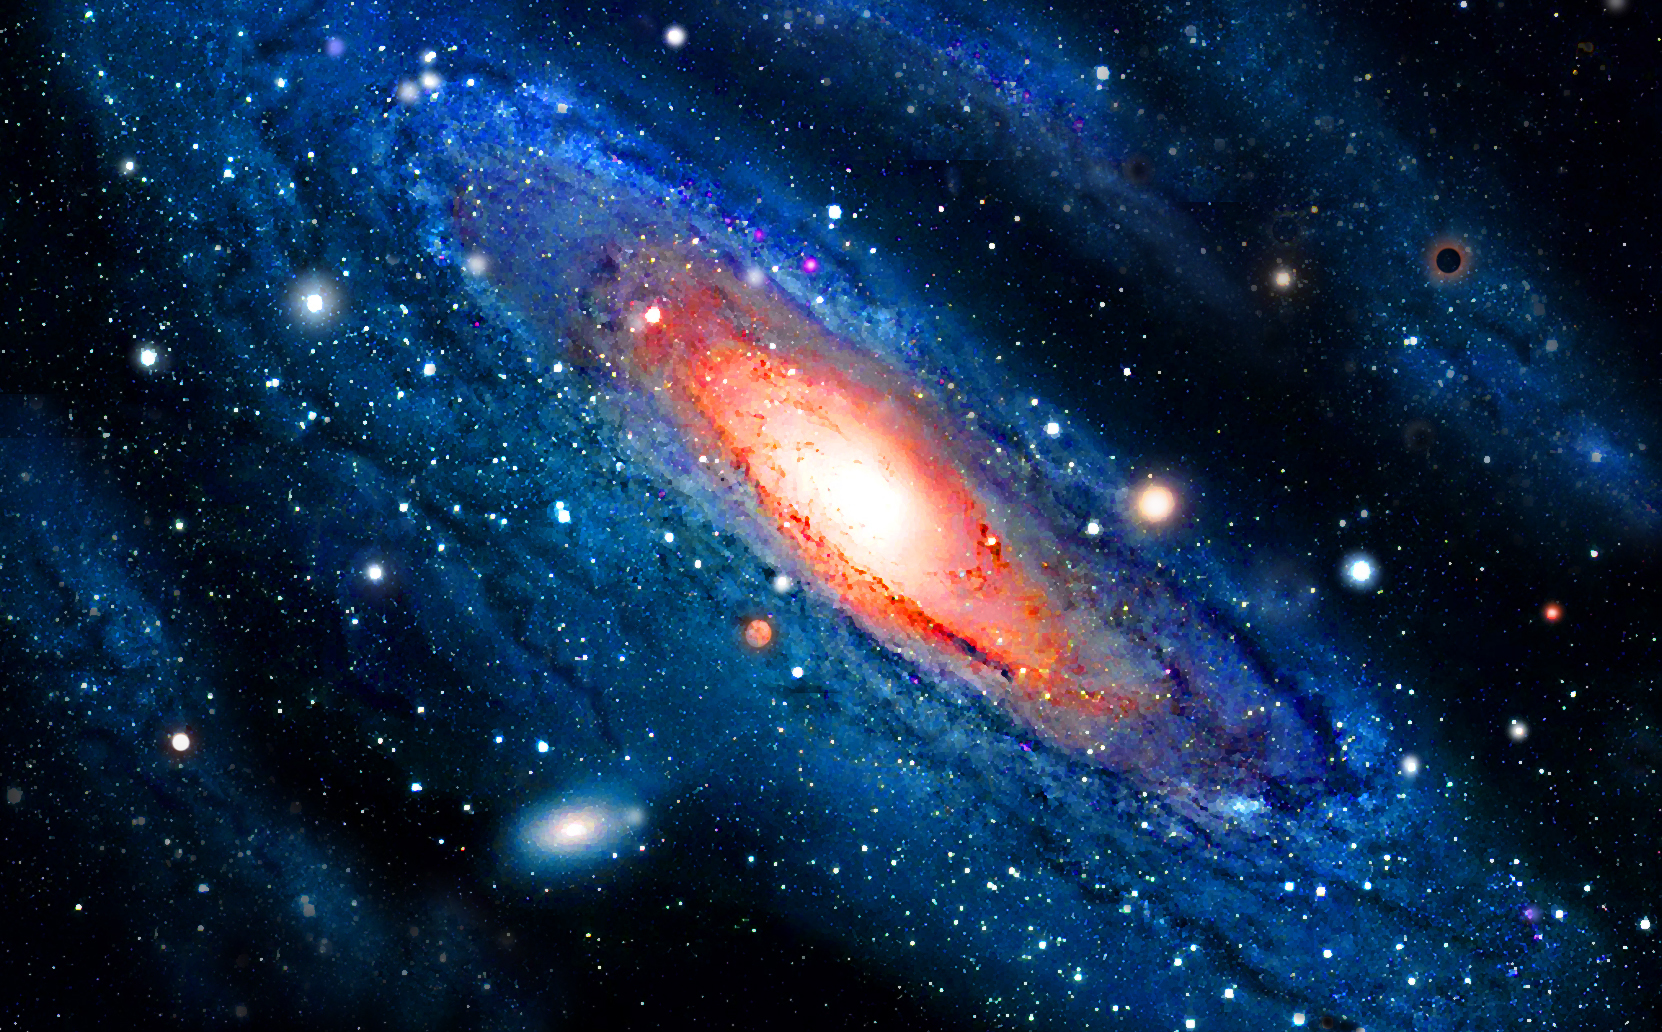 Cool Hd Space Galaxy Wallpapers: Amazing Galaxy Wallpapers